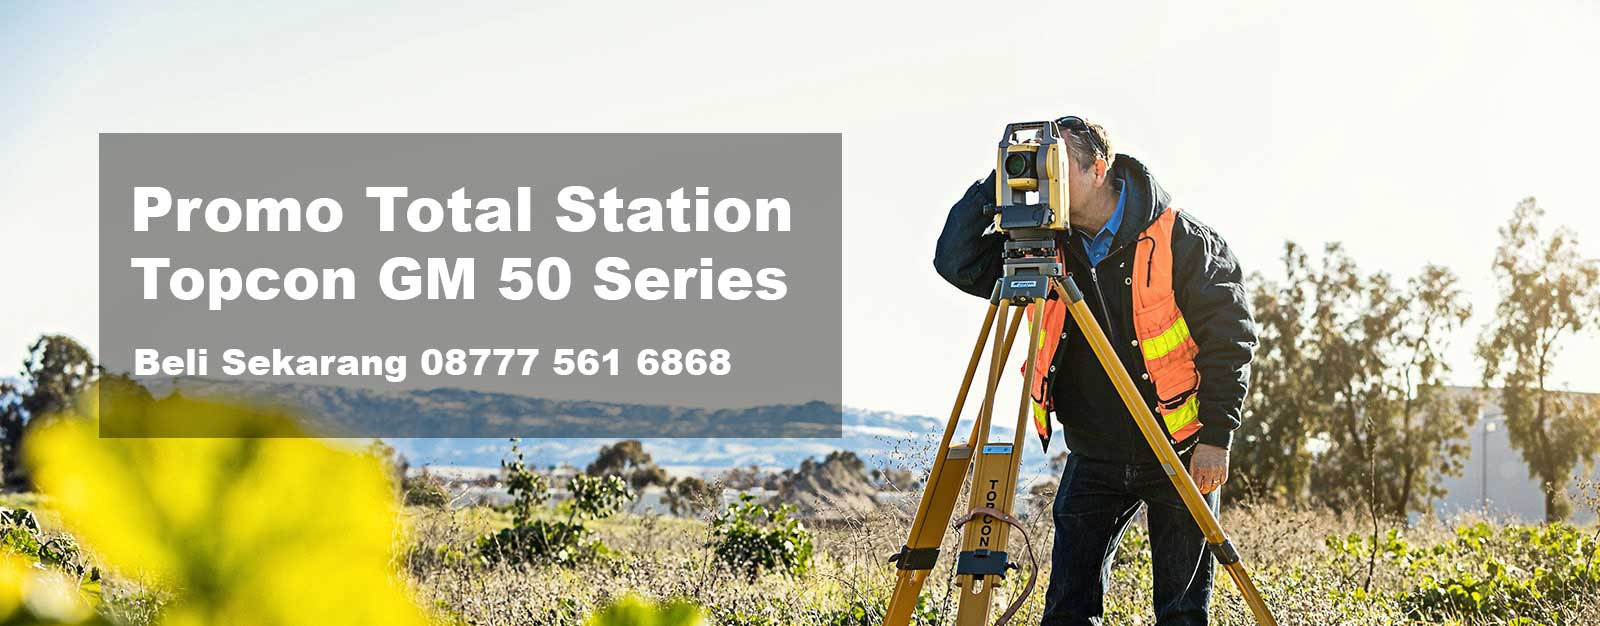 promo-total-station1